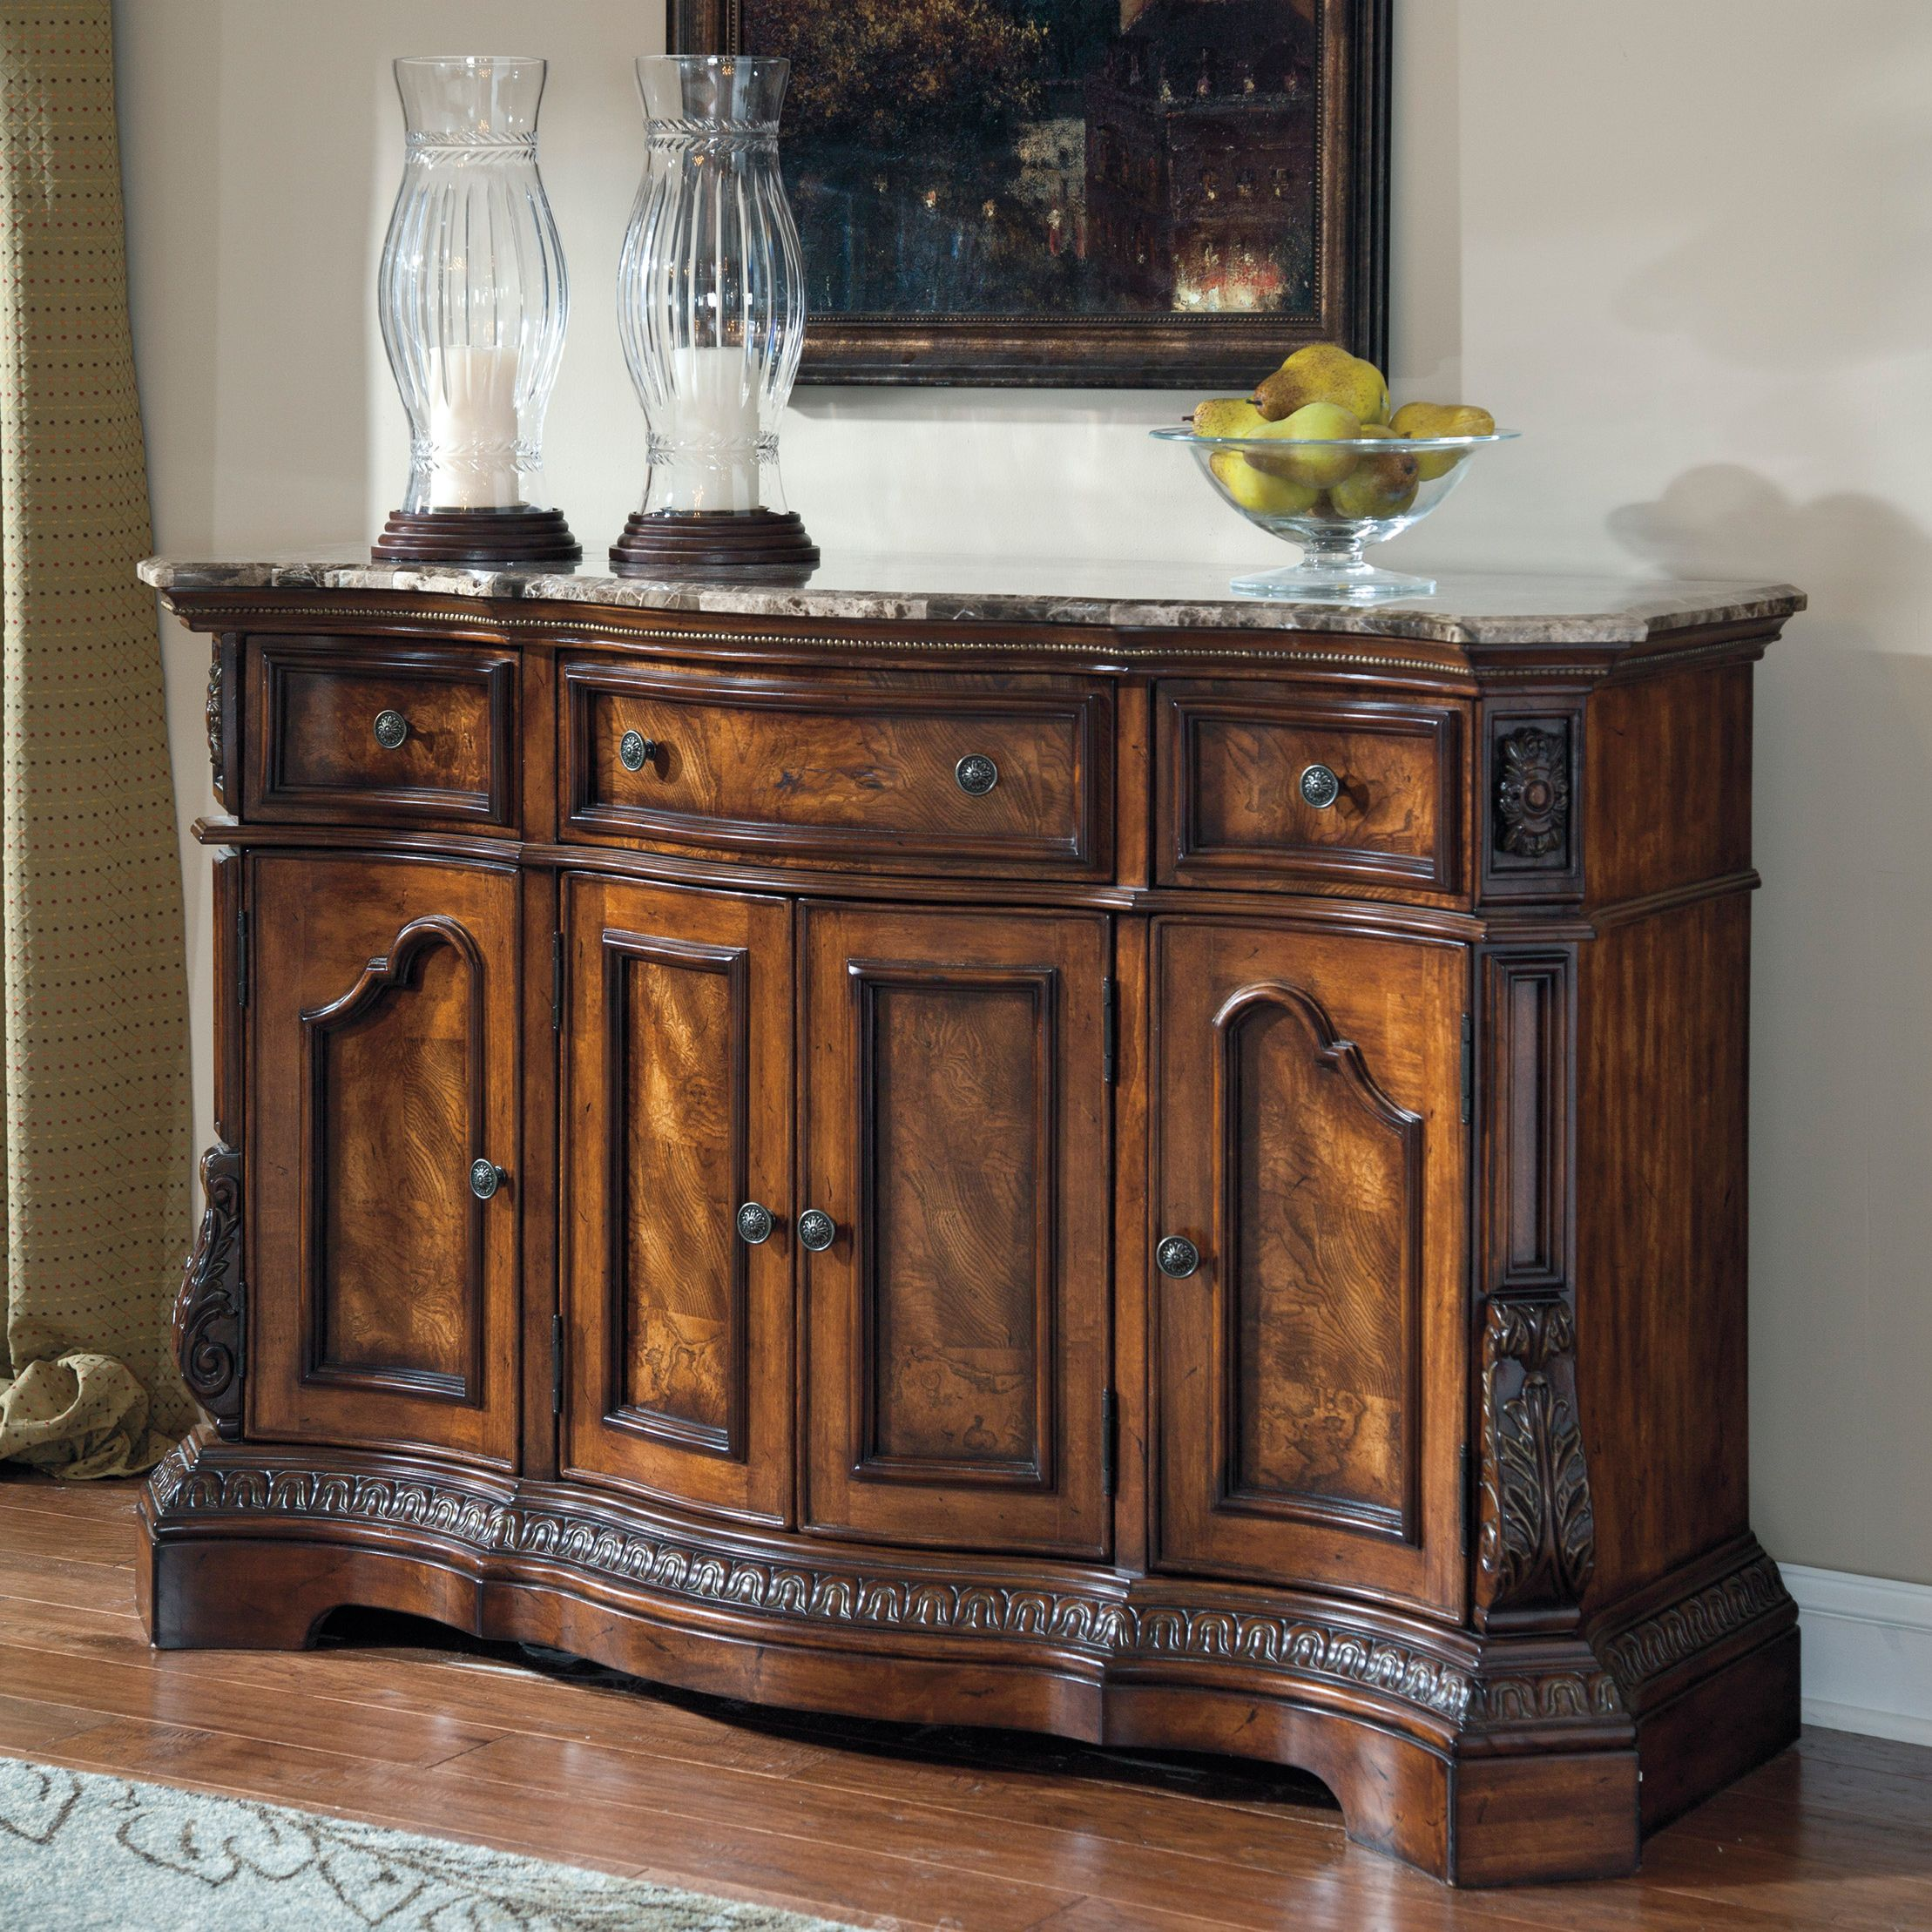 Signature Designashley 'ledelle' Dark Cherry Dining Room Awesome Antique Dining Room Hutch Inspiration Design